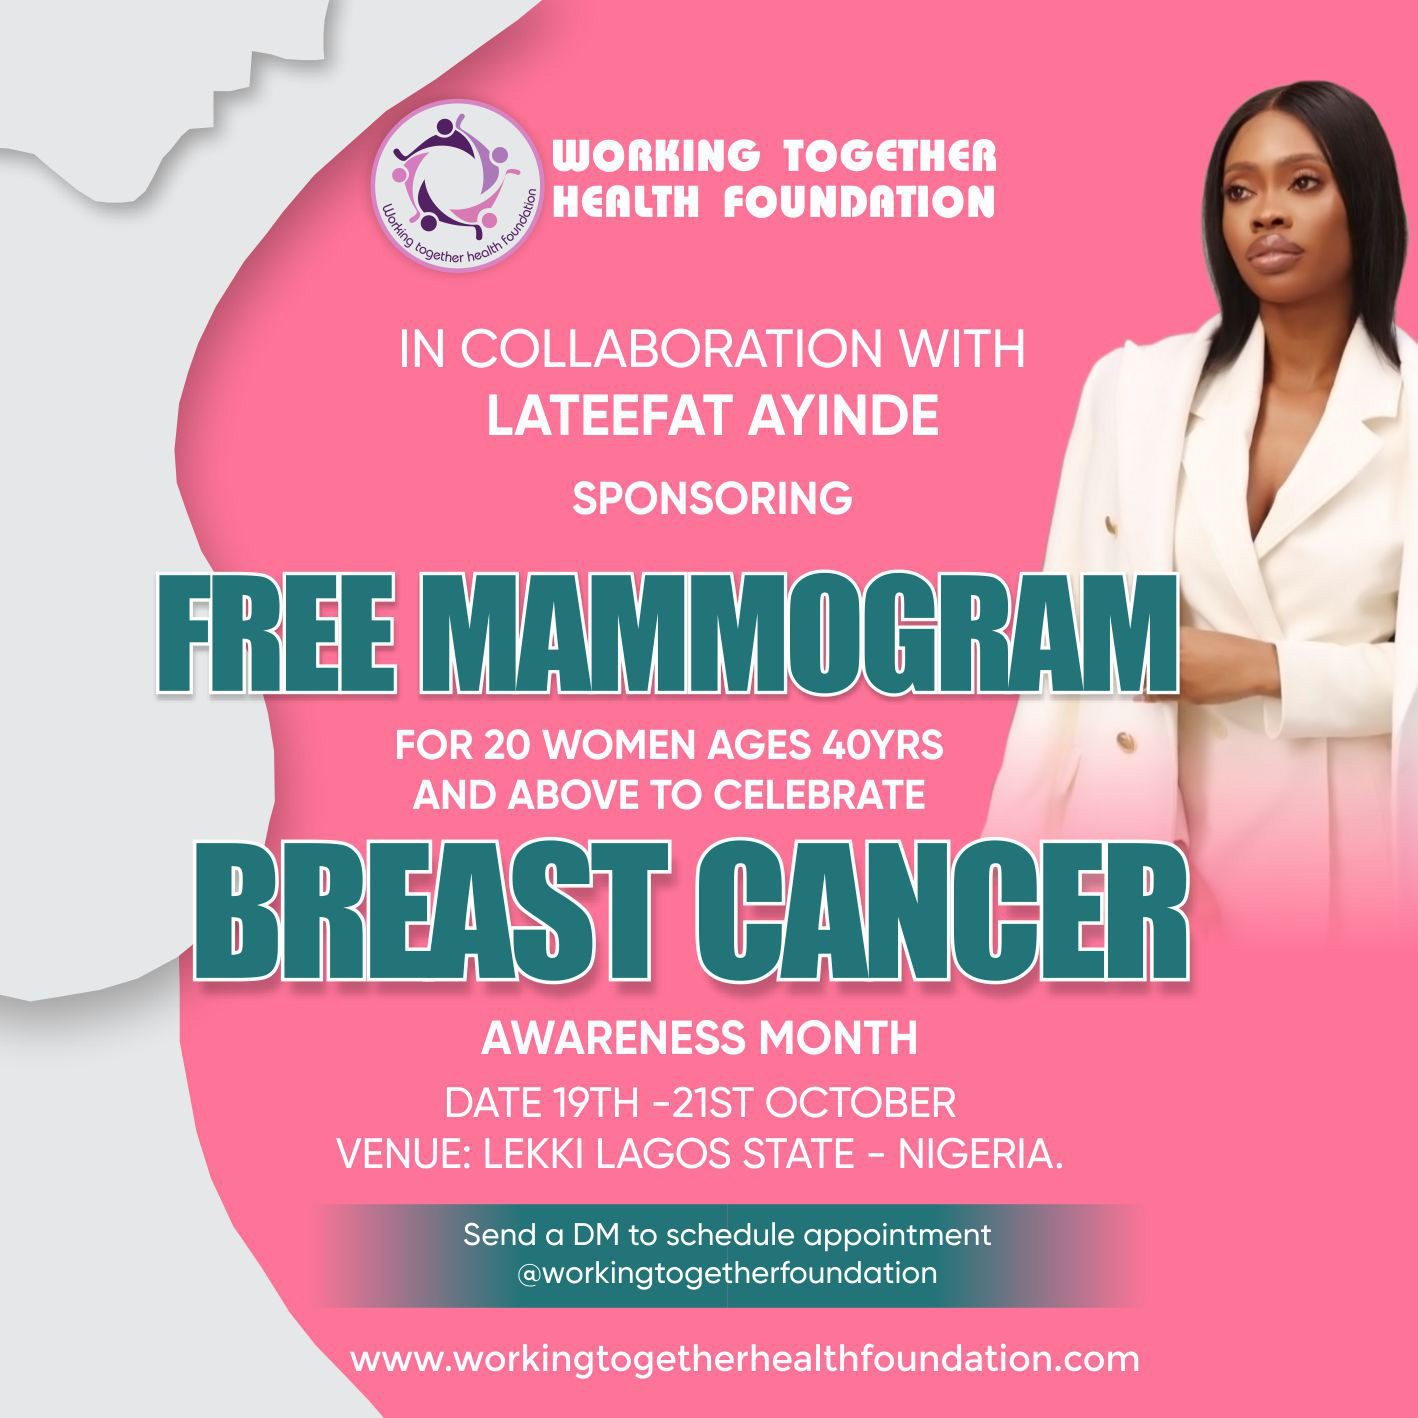 FREE MAMMOGRAM  for 20 Women Ages 40years and above to Celebrate BREAST CANCER AWARENESS MONTH